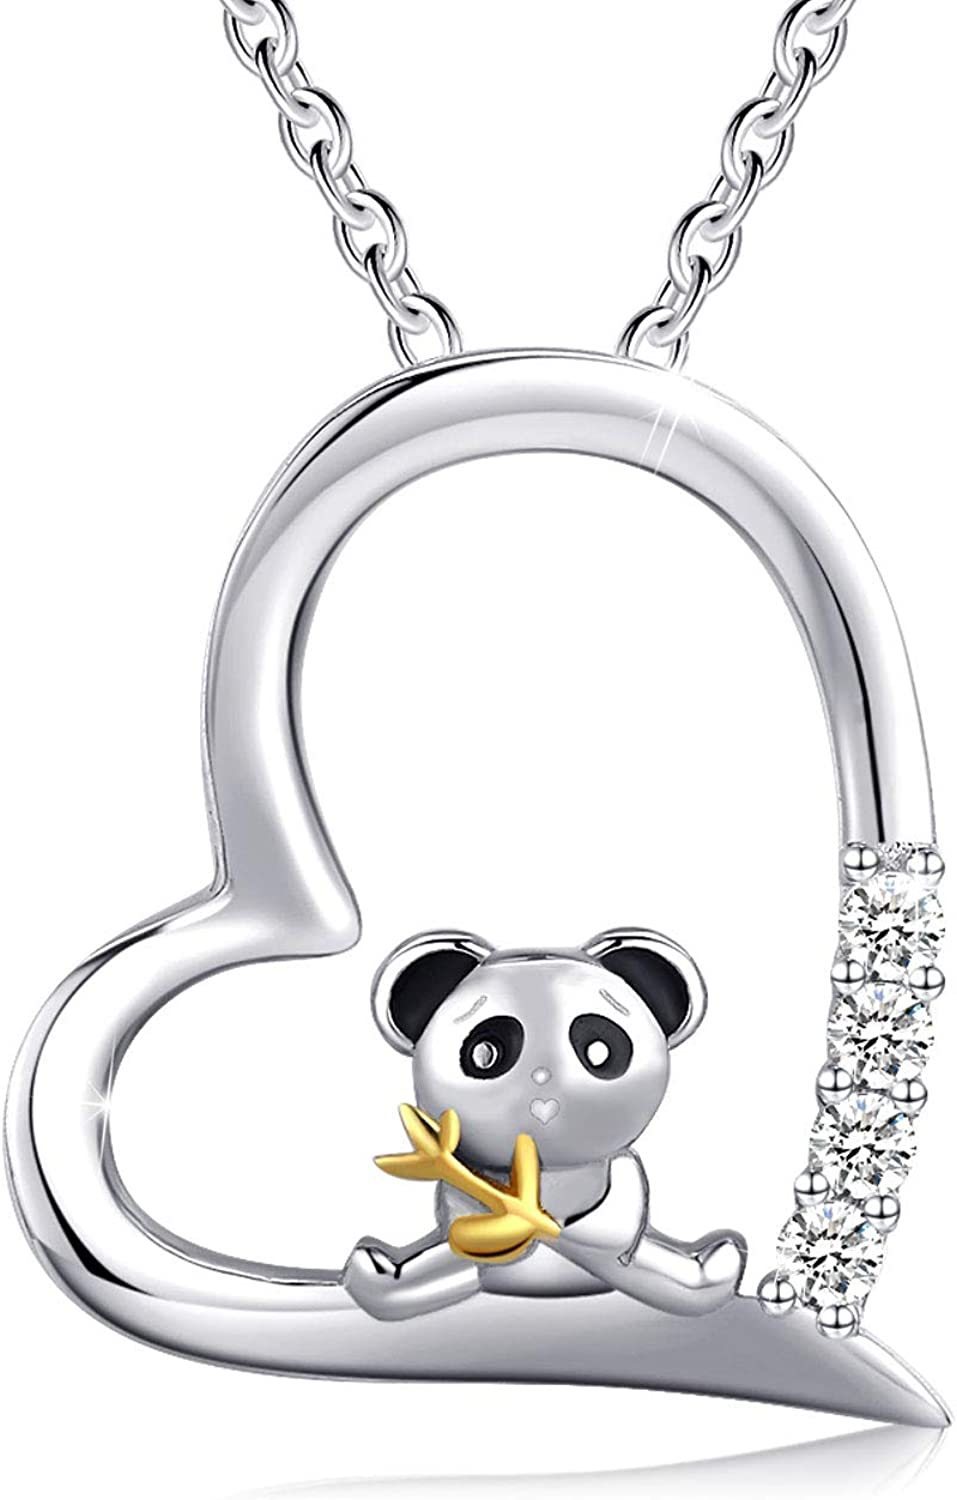 RBG Dissent Panda Necklace Panda Jewelry 925 Sterling Silver Bamboo Panda Bear Necklace for Women Animal Panda Lover Gift (A-Silver)